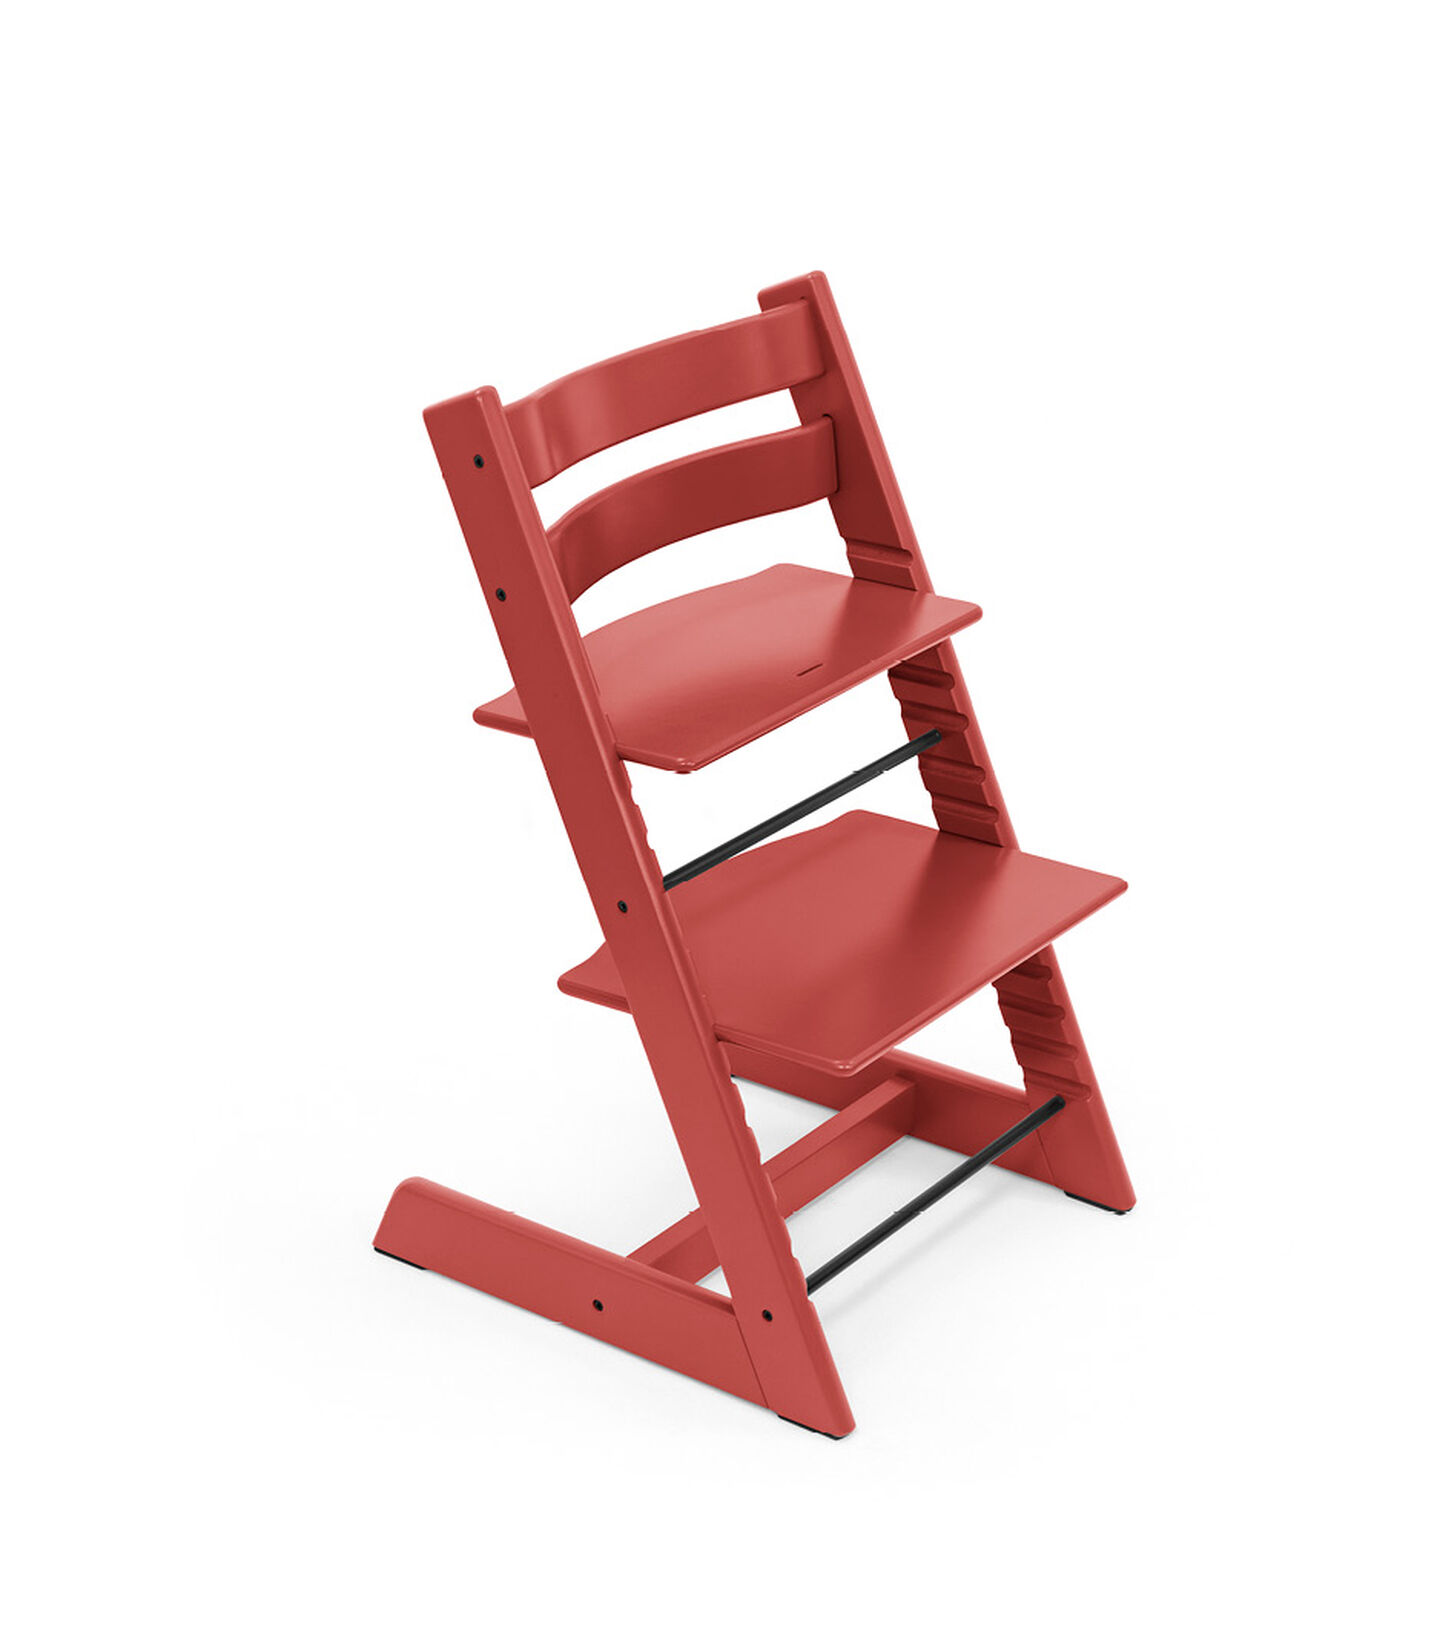 Tripp Trapp® Chair Warm Red, Warm Red, mainview view 1